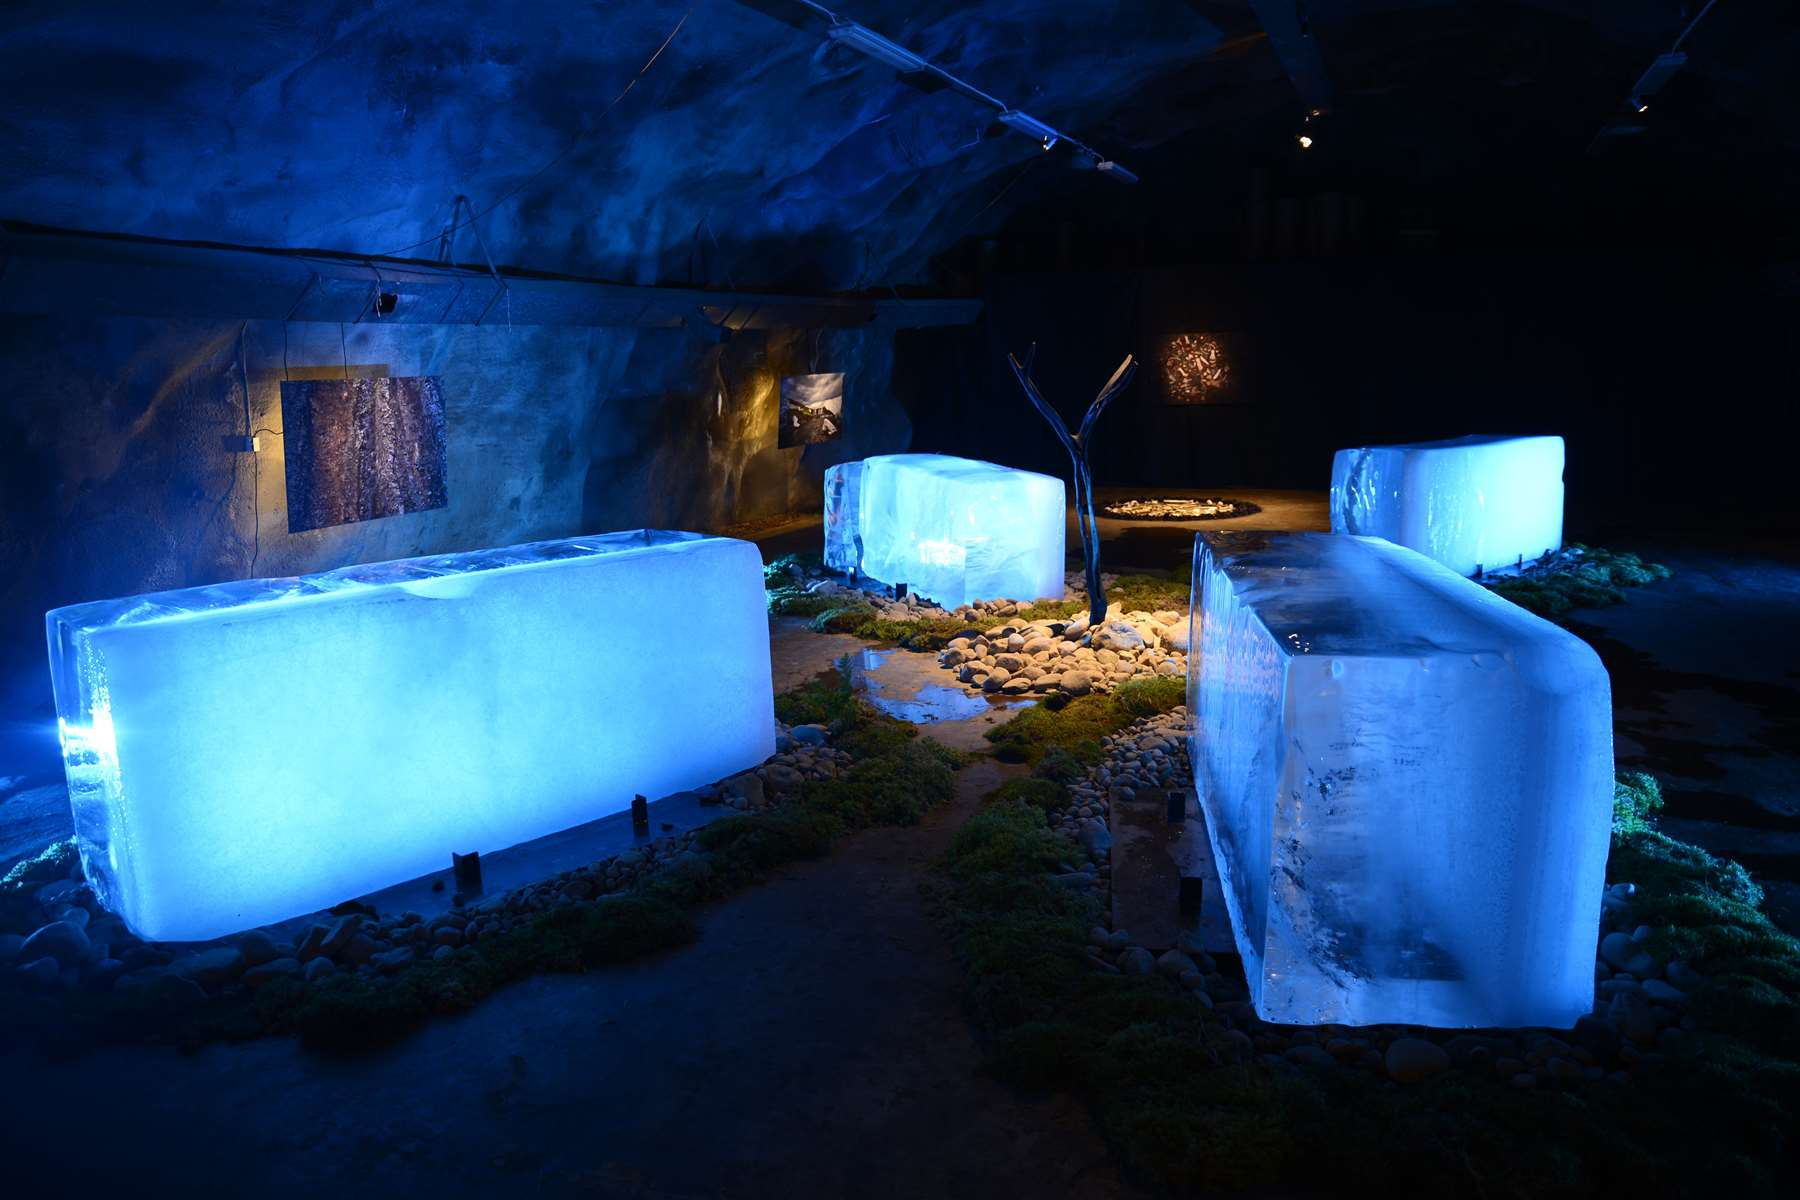 ICE AGE, One night art show in a Swedish mountain shelter, 2014. Exhibition by Karl Chilcott.